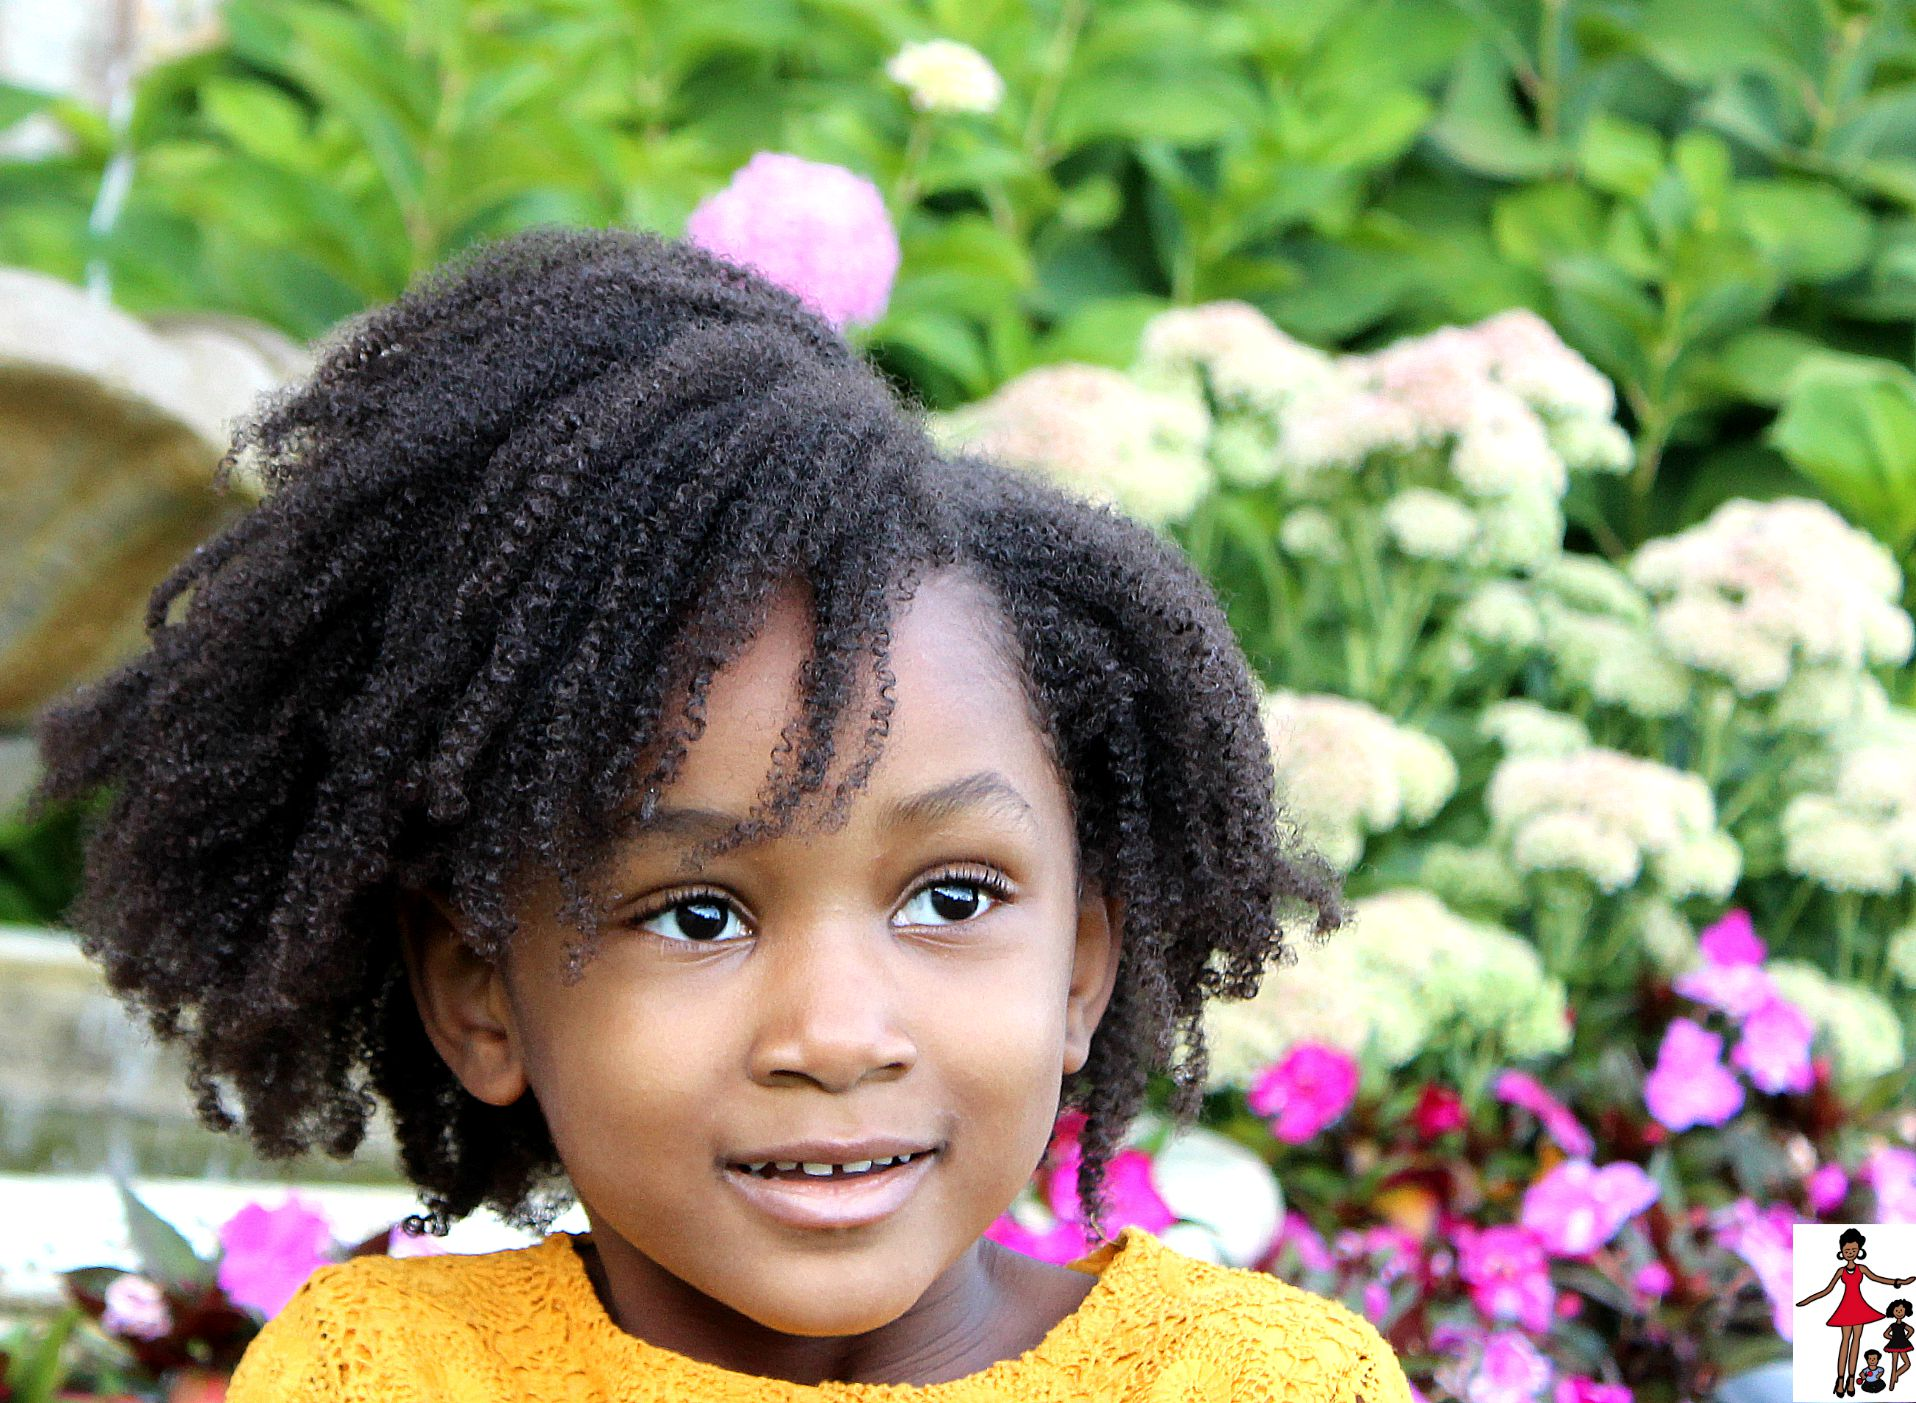 Hair Styles For Toddlers: Kids Natural Hairstyle: Wash And Go On Coily Type 4 Hair